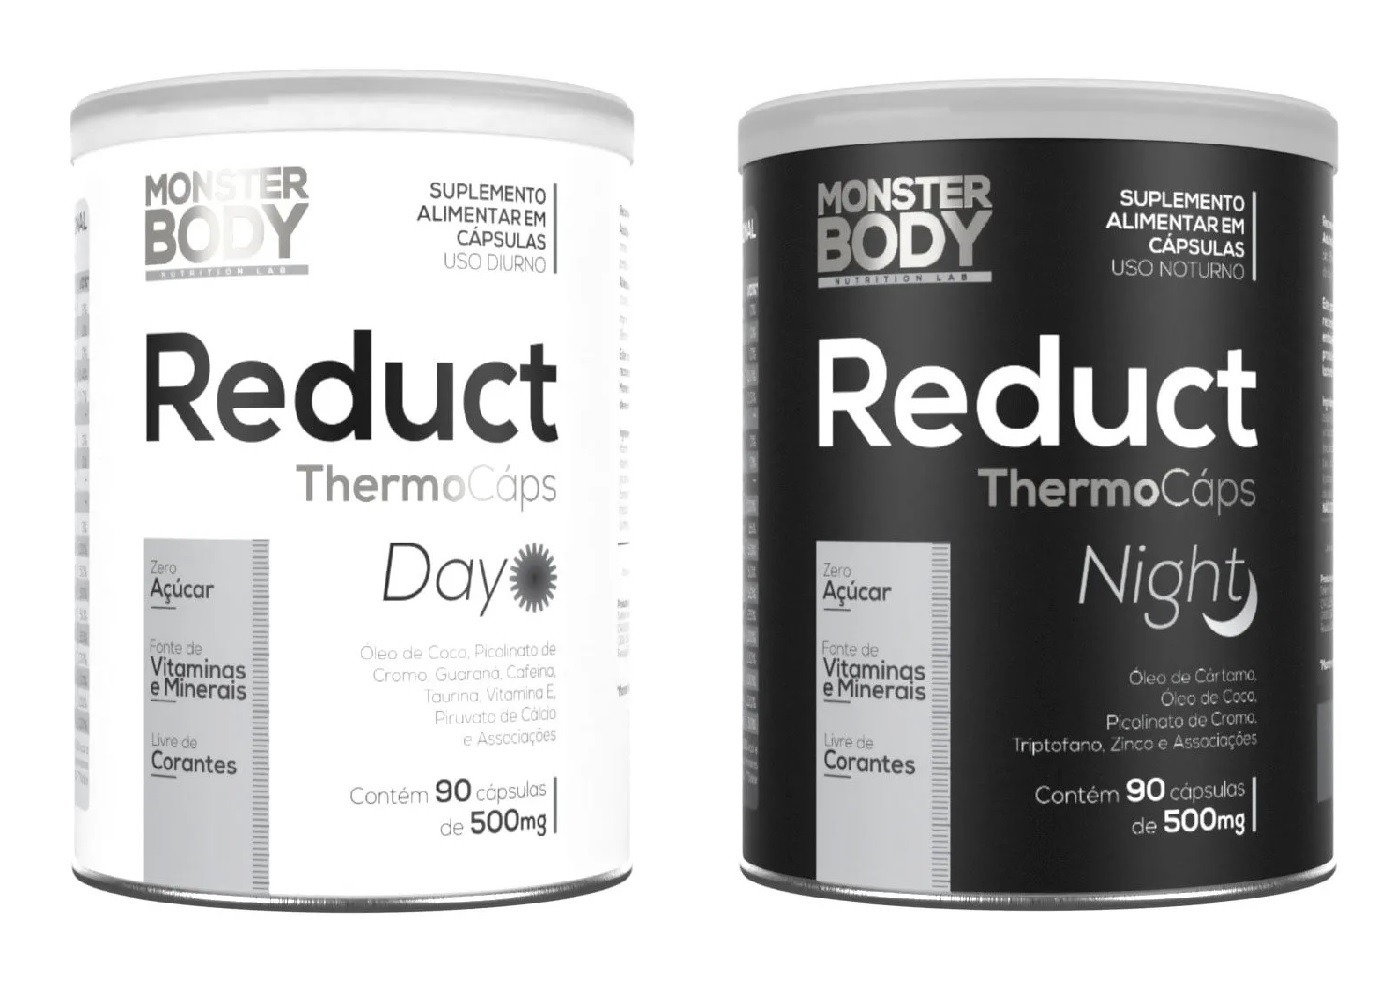 Kit Reduct ThermoCaps Day/Night